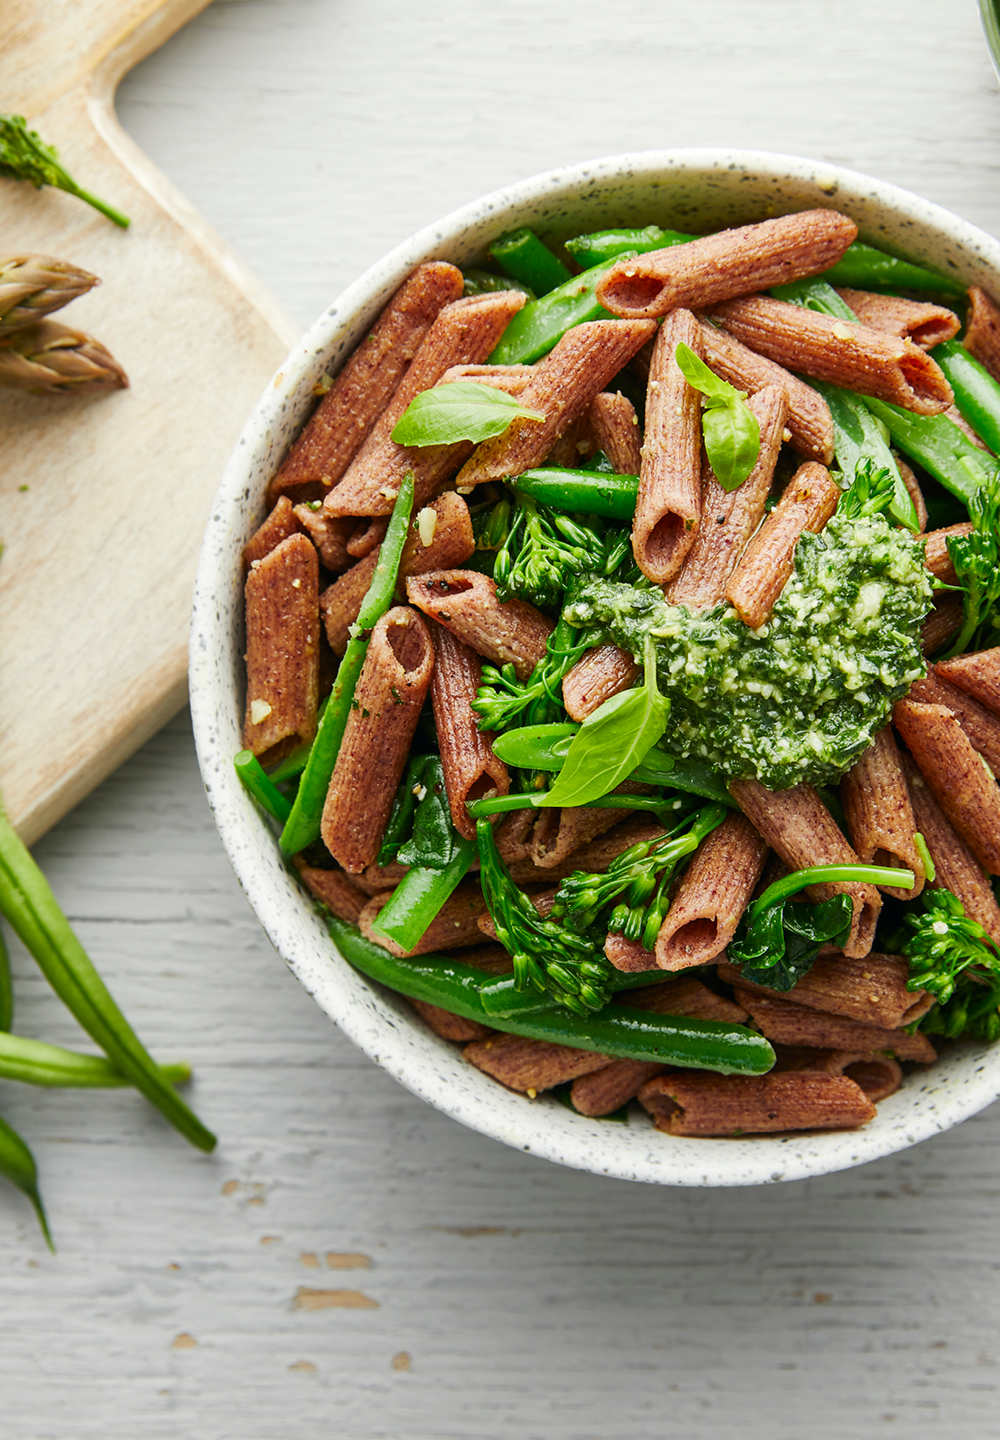 Fibre Fest Penne With Mixed Greens & Basil Pesto